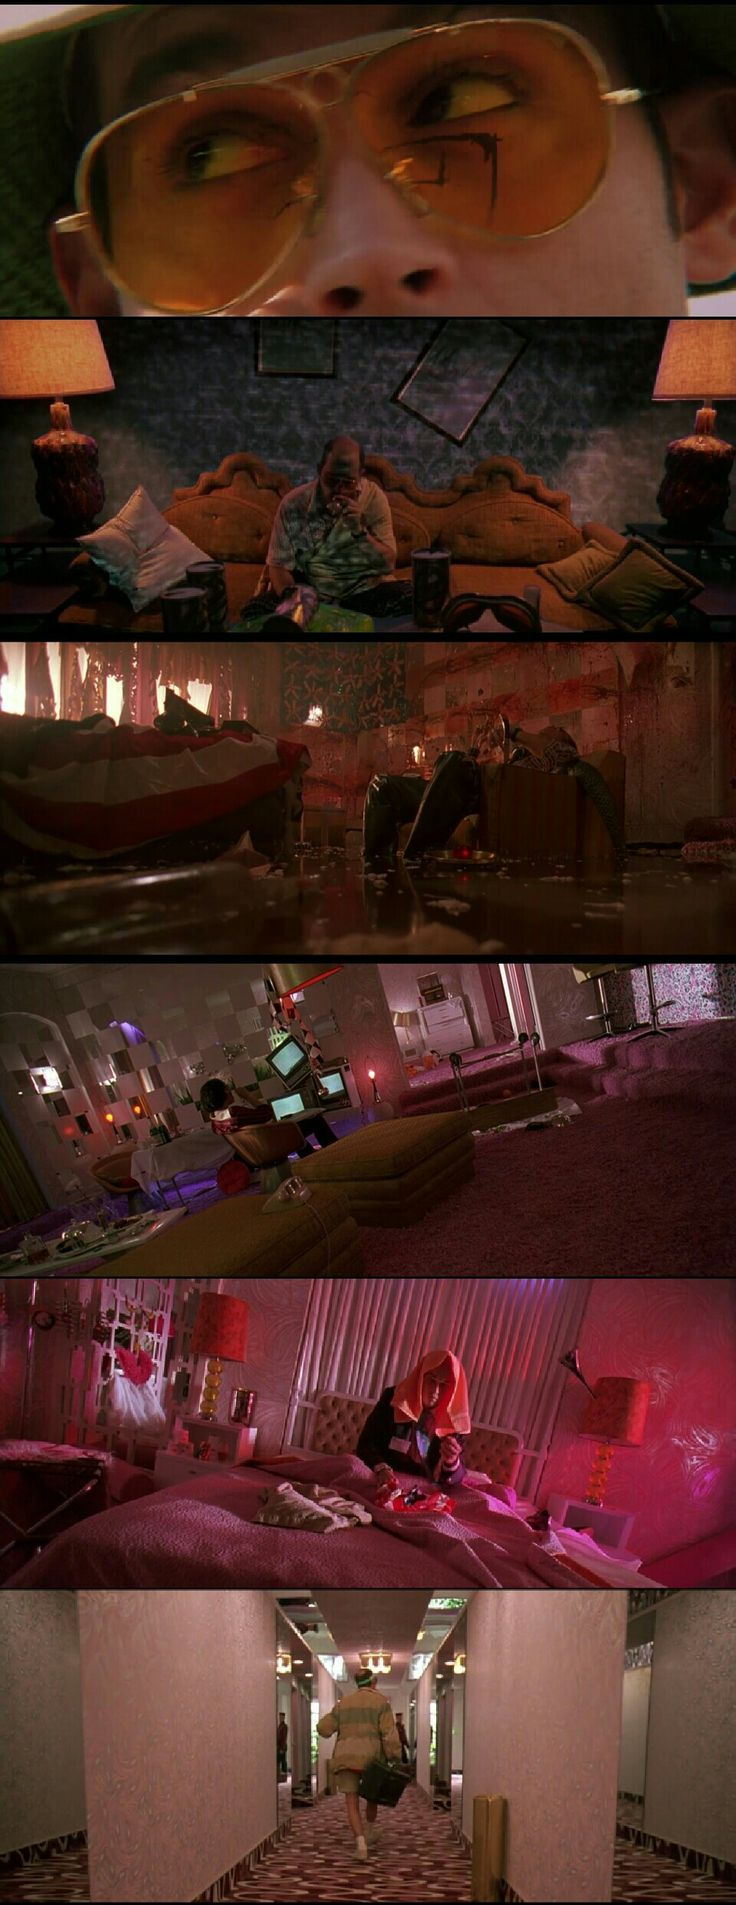 Fear and Loathing in Las Vegas(1998) Directed by Terry Gilliam. Cinematography by Nicola Pecorini.